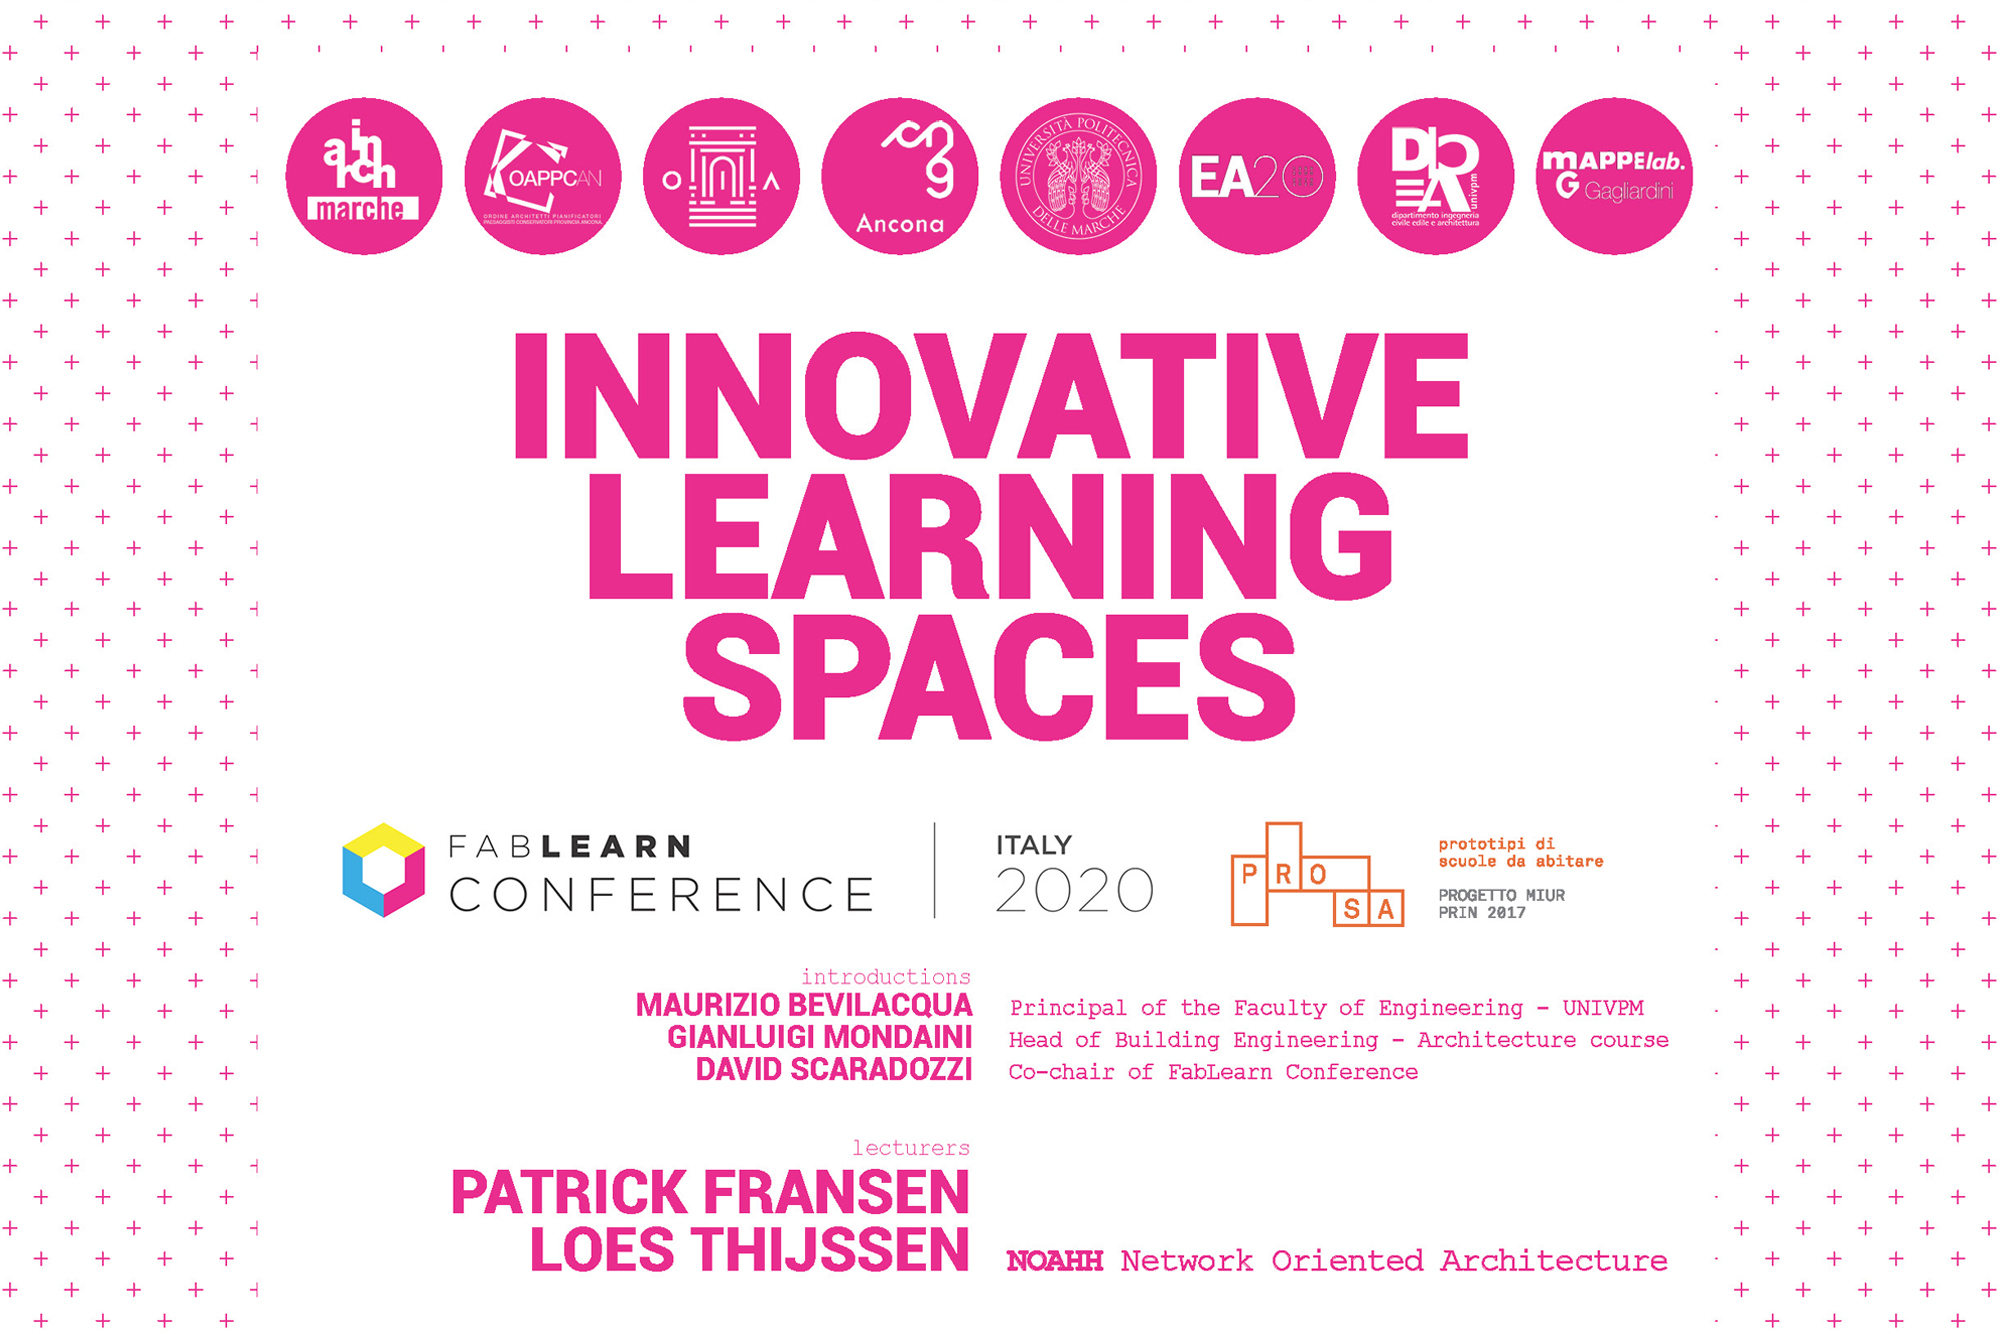 Innovative Learning Spaces lecture, by Patrick Fransen and Loes Thijssen, NOAHH